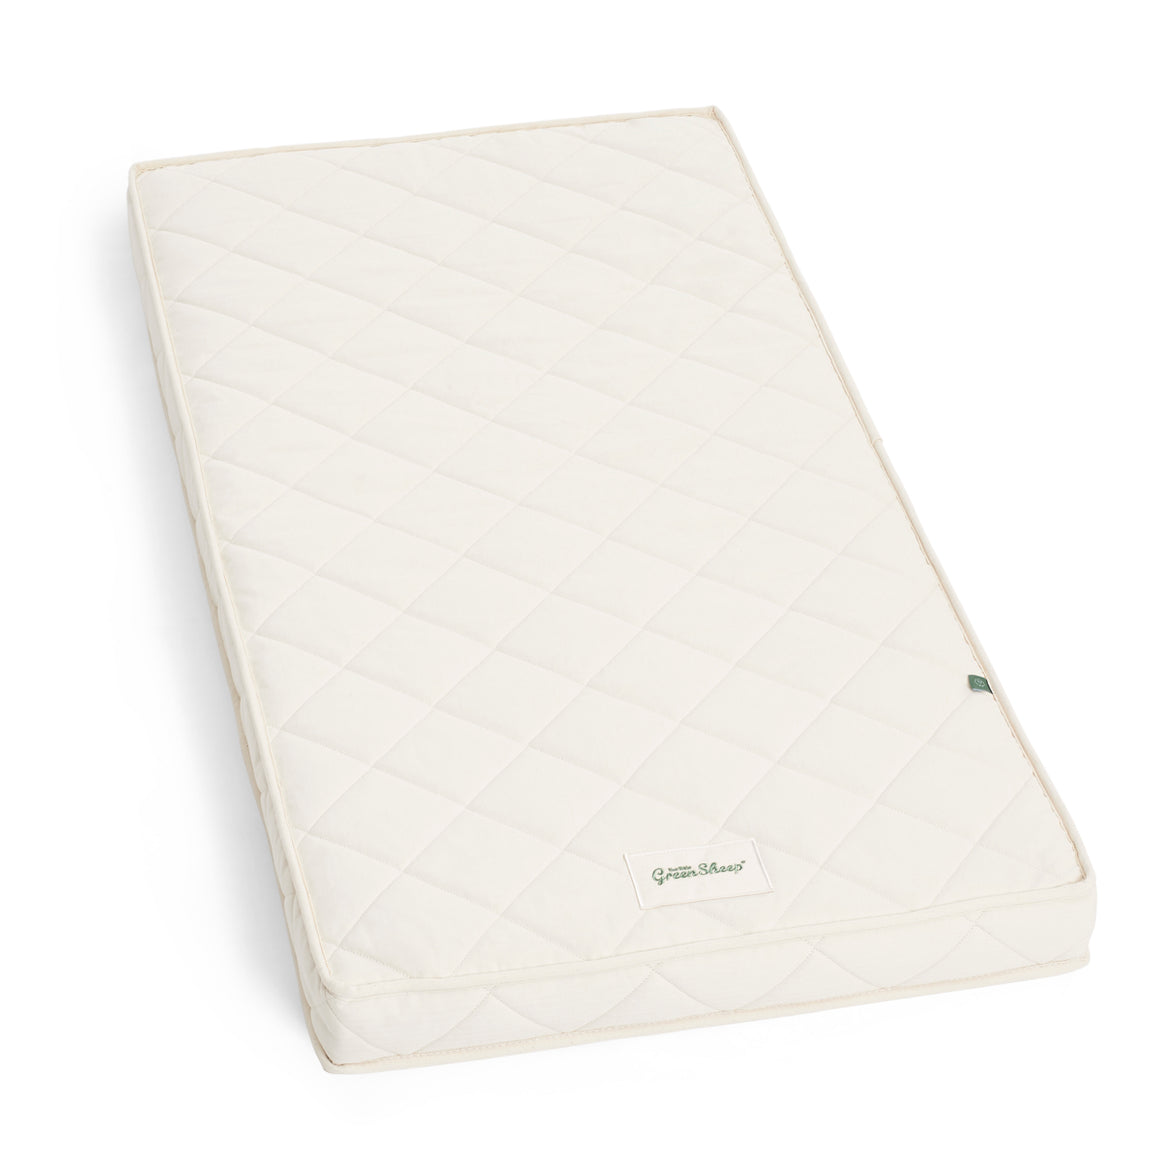 The Little Green Sheep Natural Twist 60x120 Cot Mattress